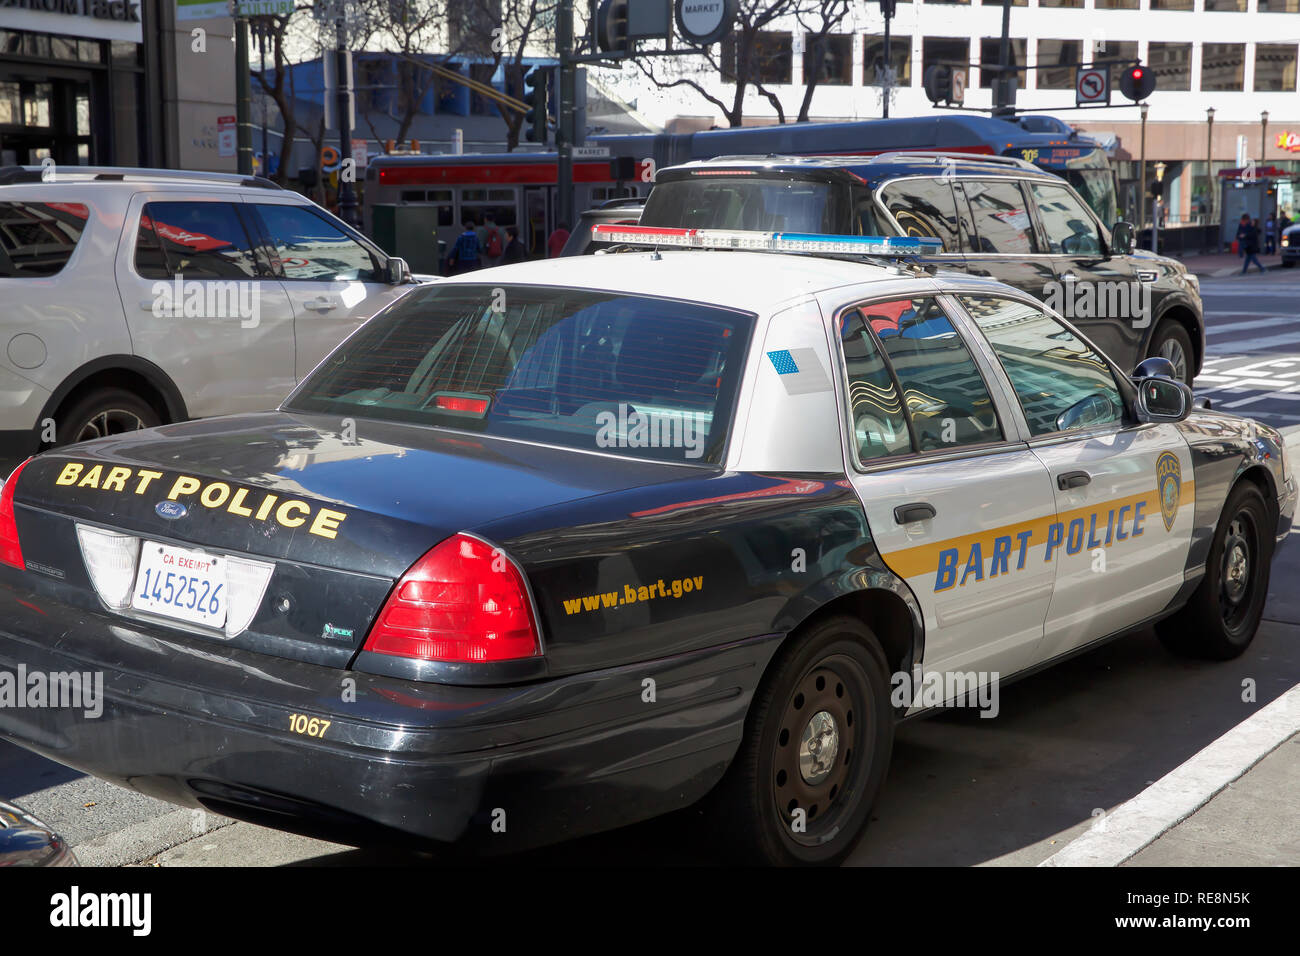 BART Police car parked in San Francisco, USA - Stock Image